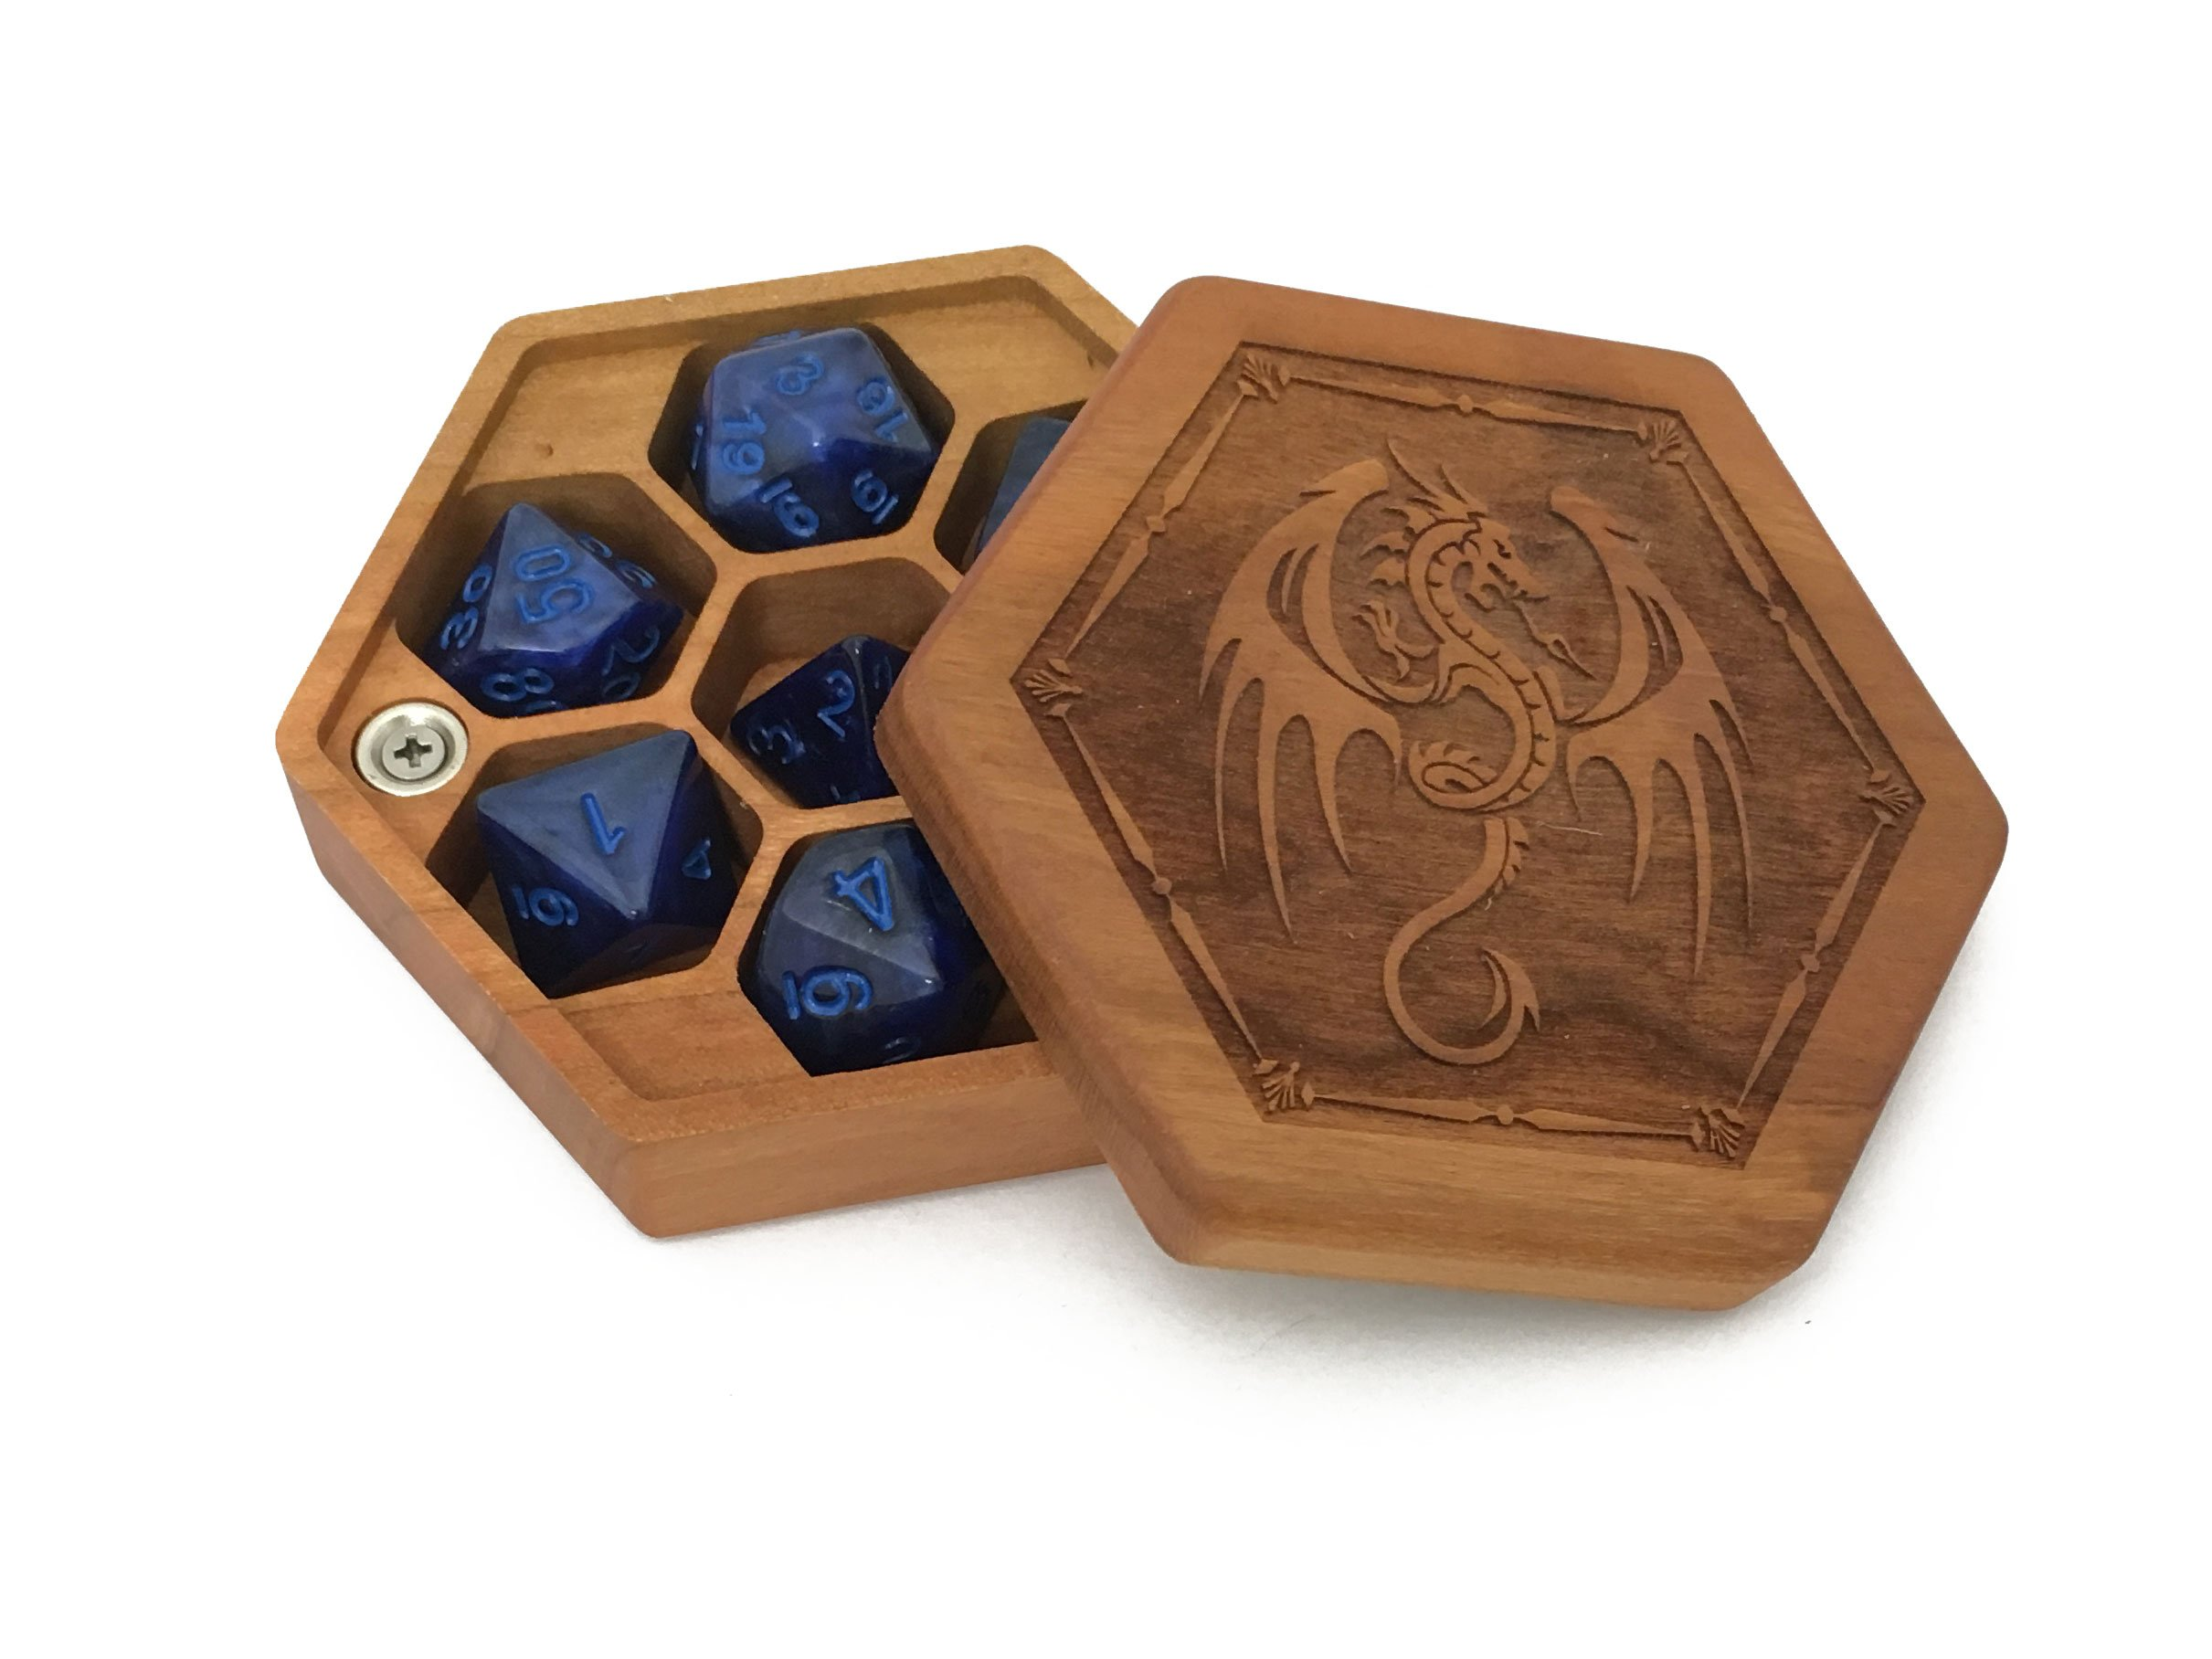 Pocket Sized Hex Dice Wood Chest with Magnetic Lid - Perfect for DnD, Magic the Gathering Dice Counters and Any Other Tabletop Games by Elderwood Academy (Cherry/Dragon)